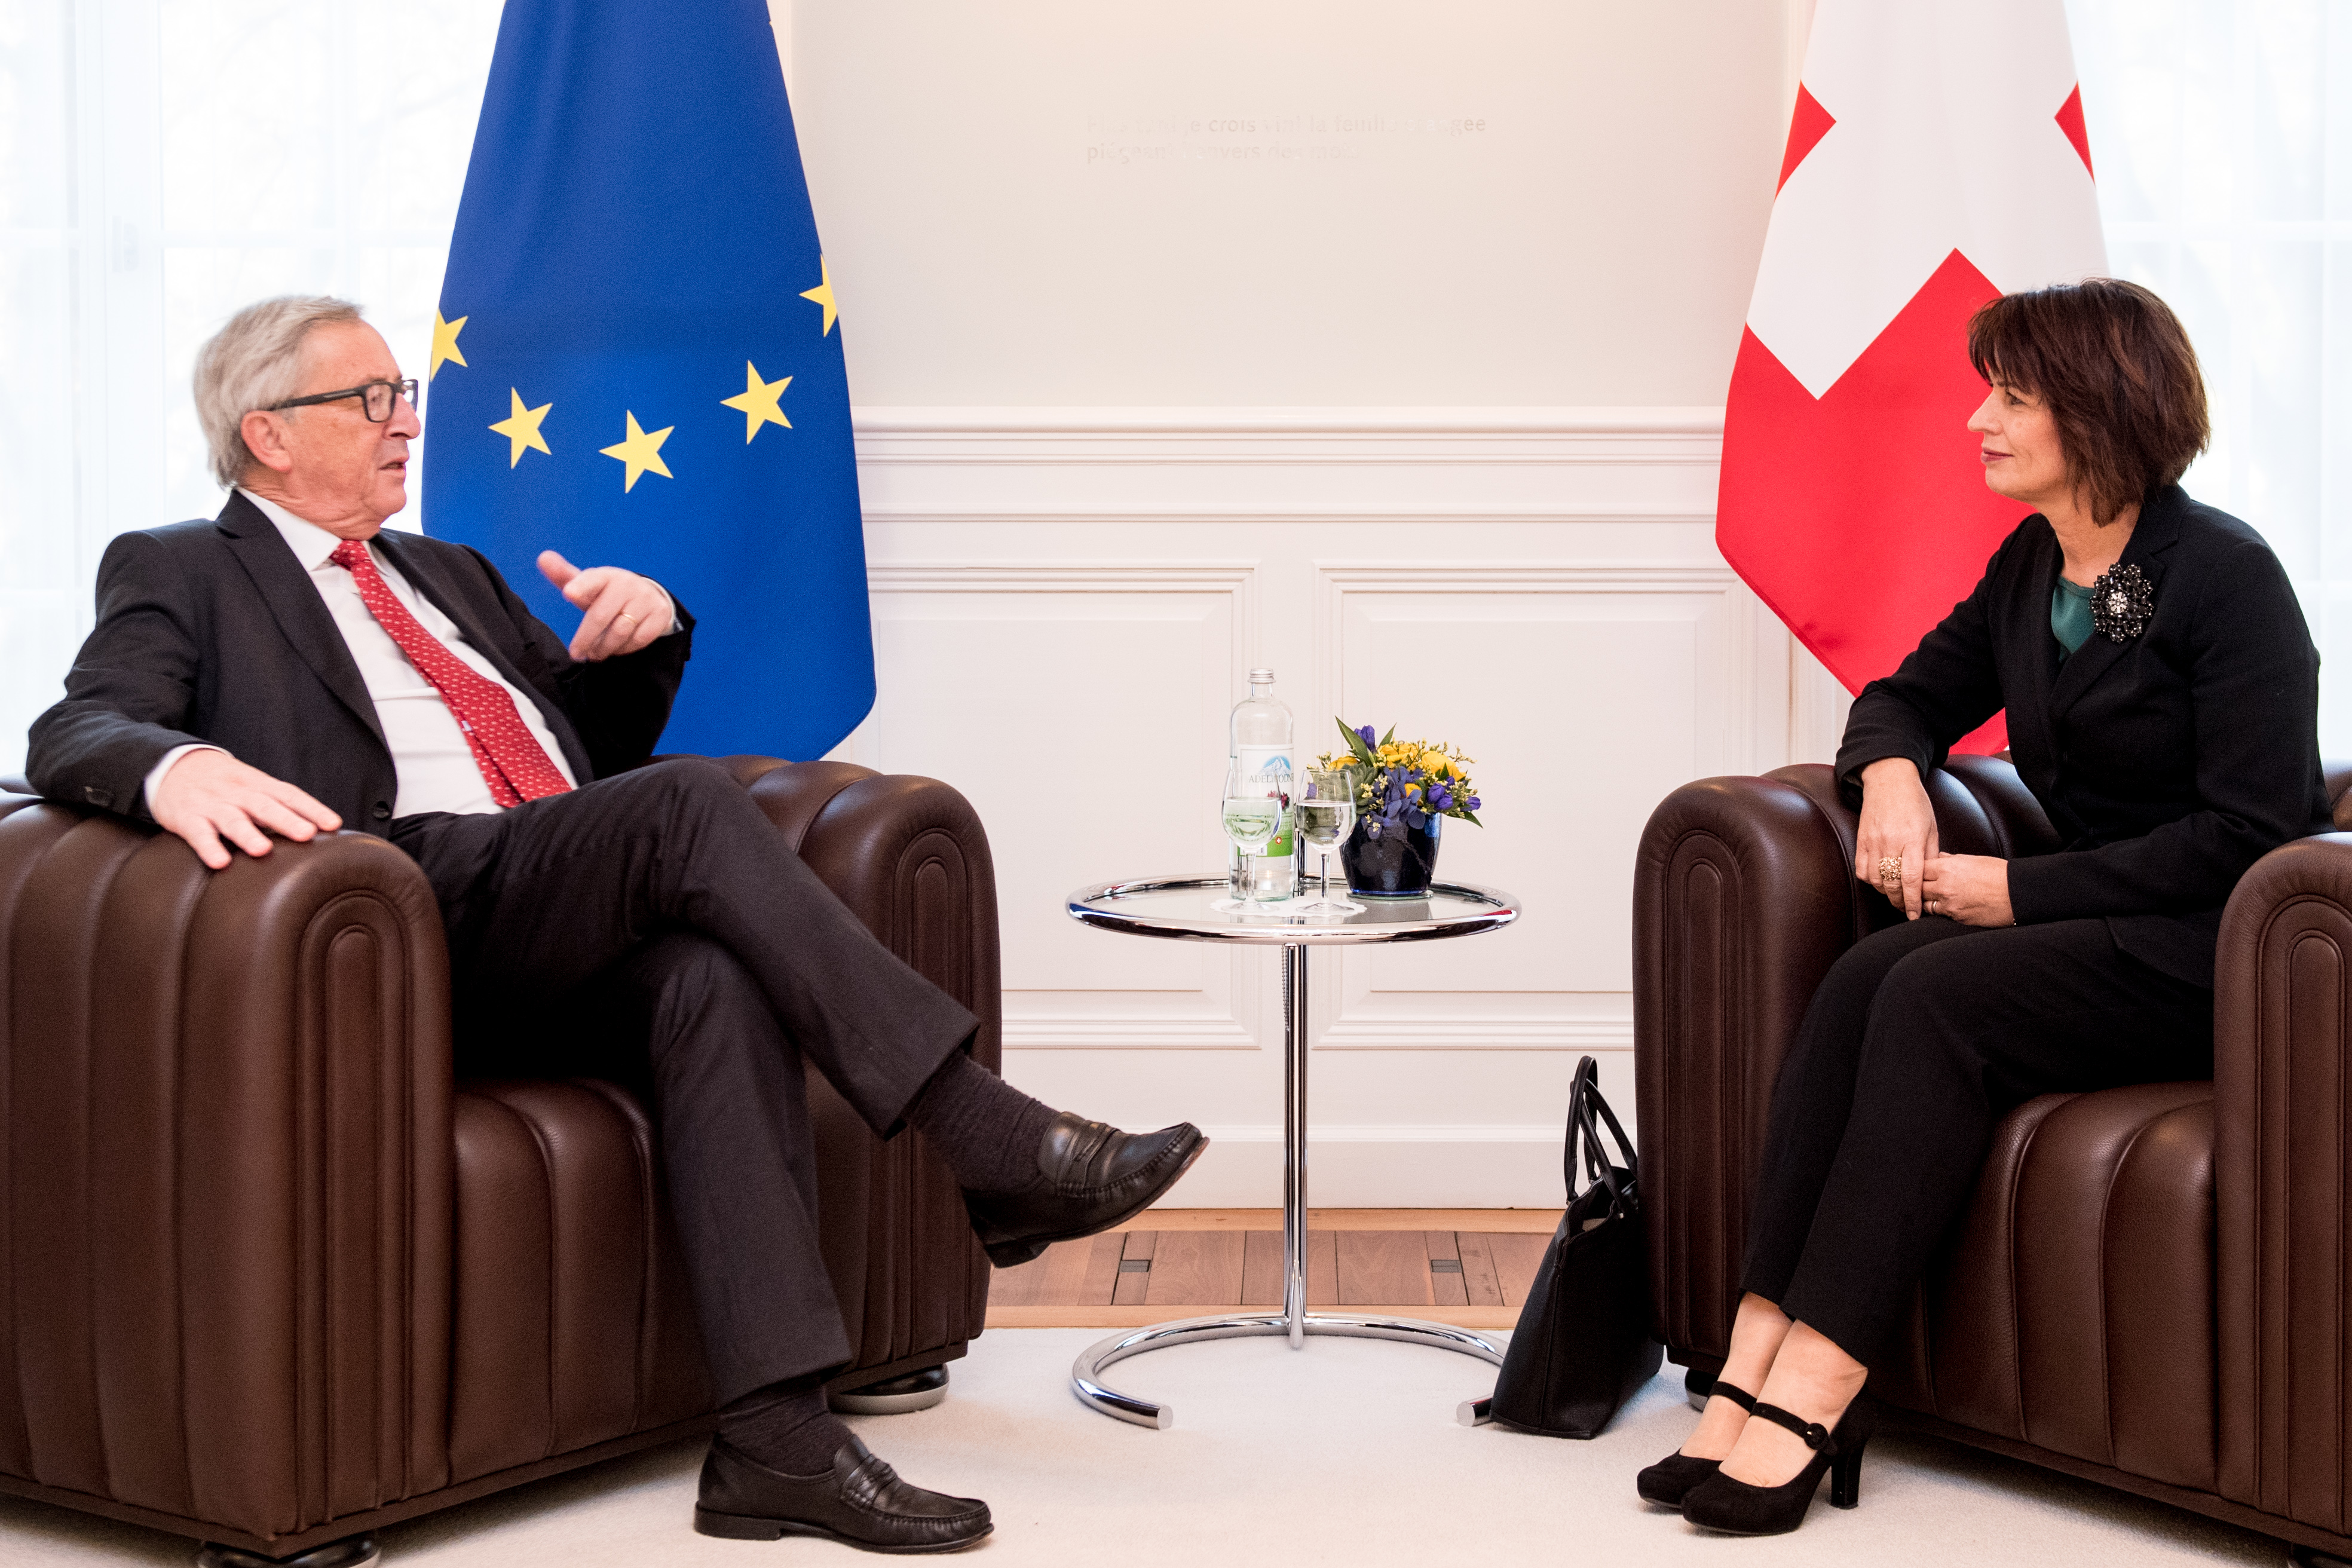 European Union recognises equivalence of Swiss trading venues under MiFID II